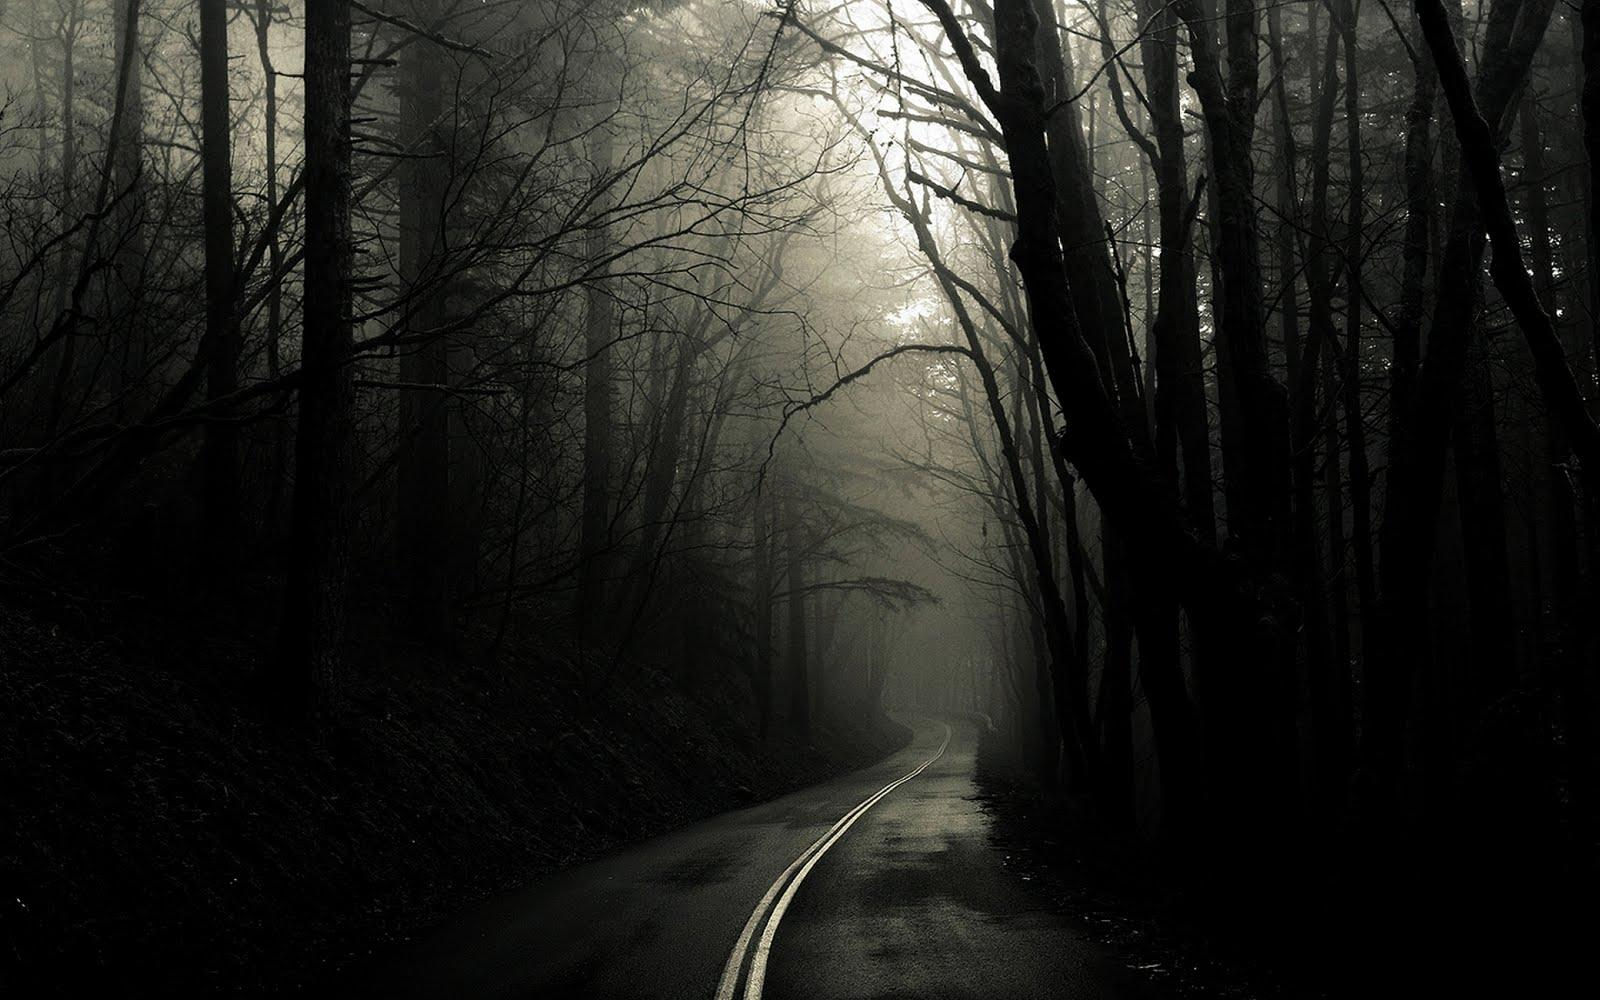 the dark forest road